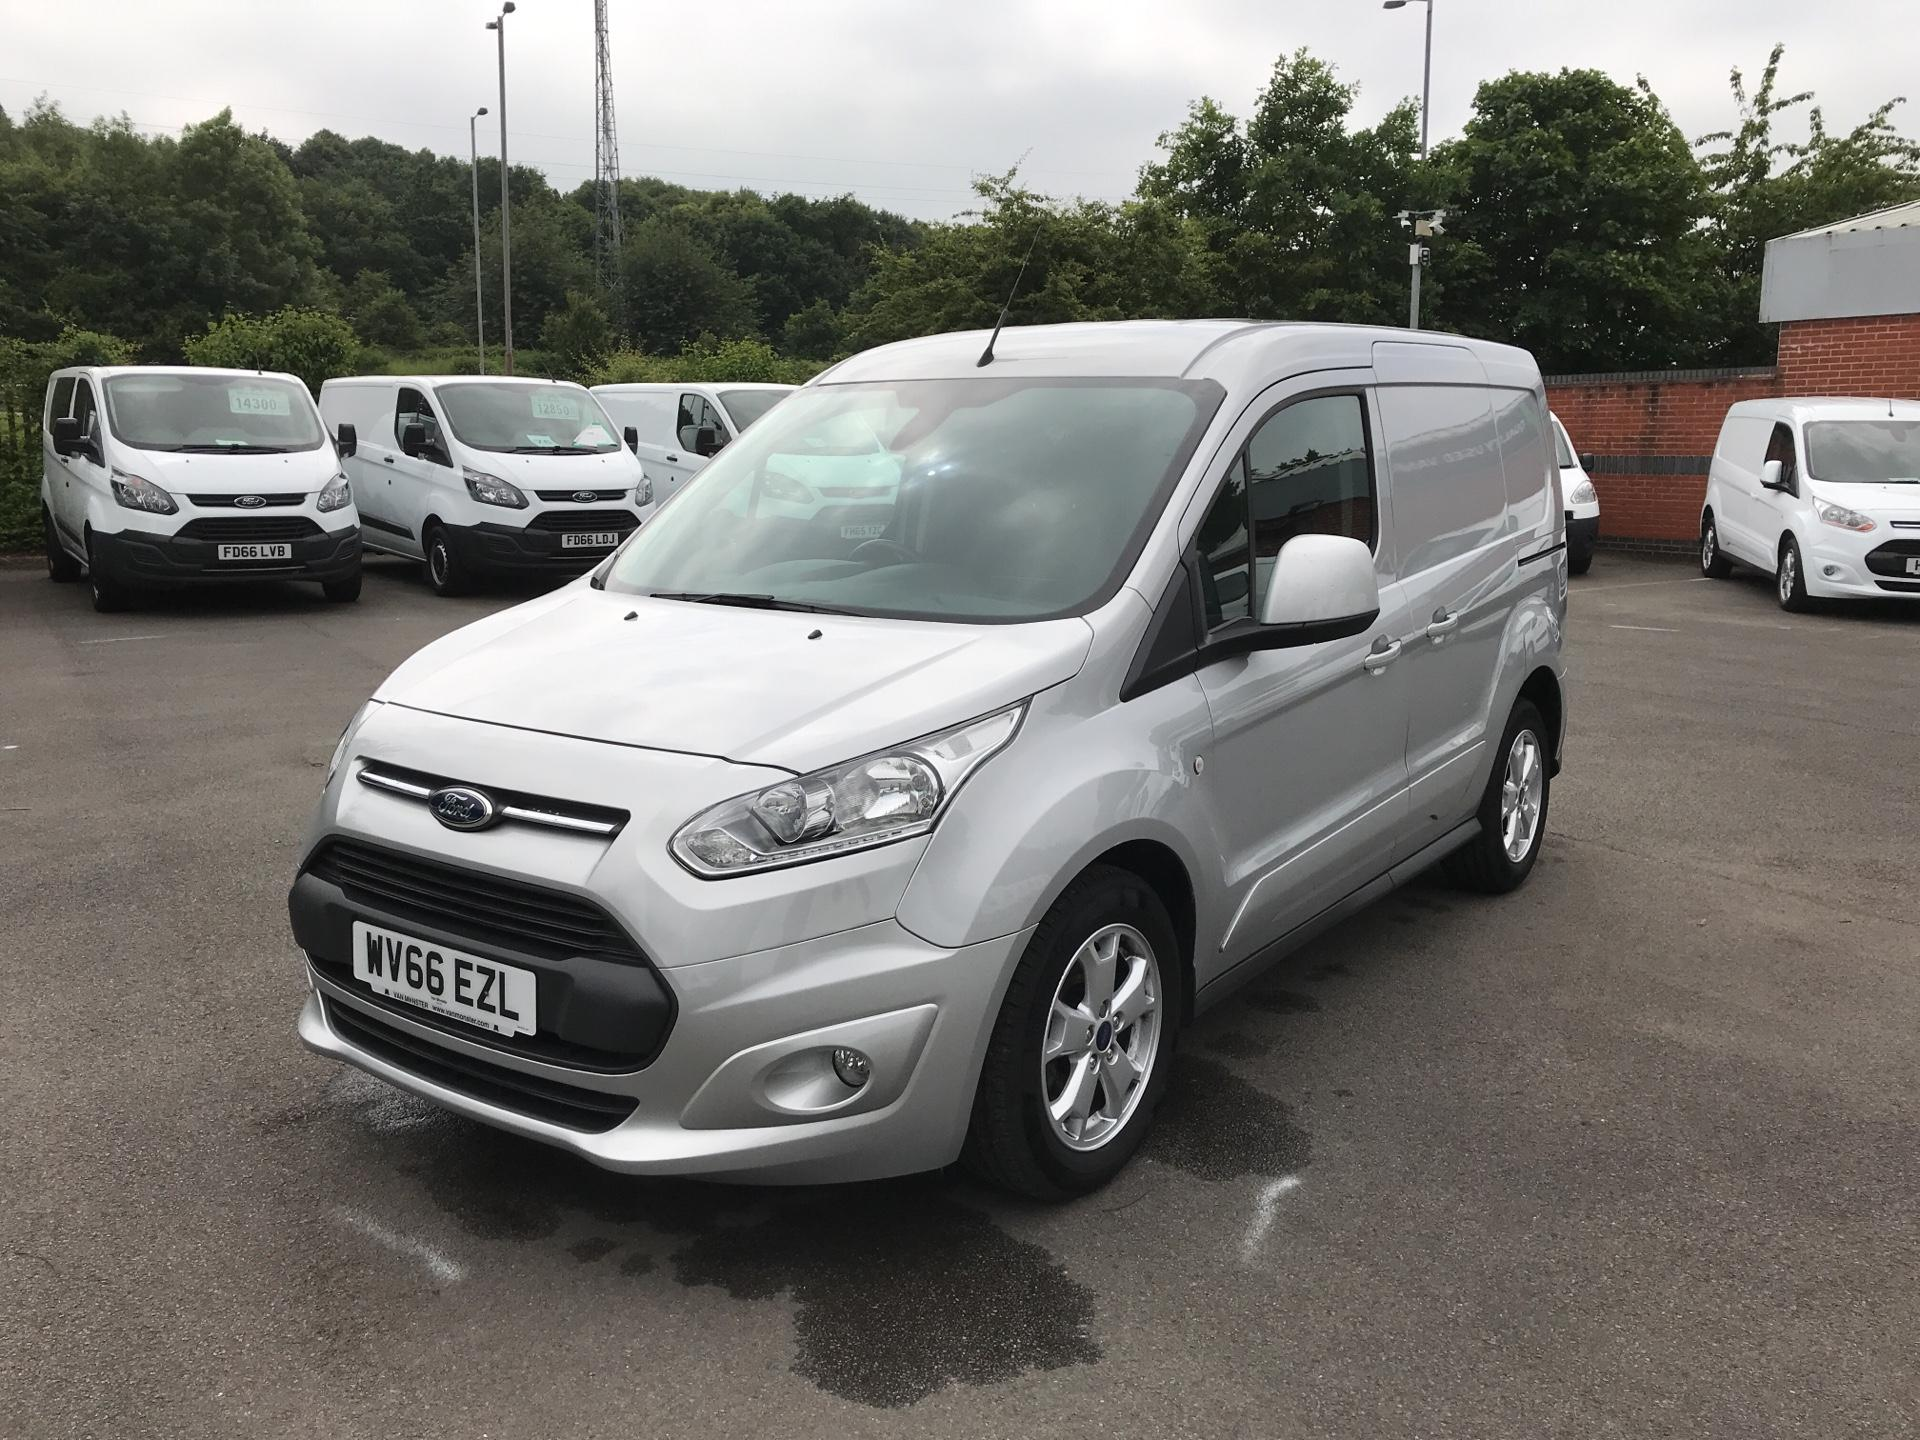 2016 Ford Transit Connect 1.5 Tdci 120Ps Limited Van EURO 6 (WV66EZL) Image 7